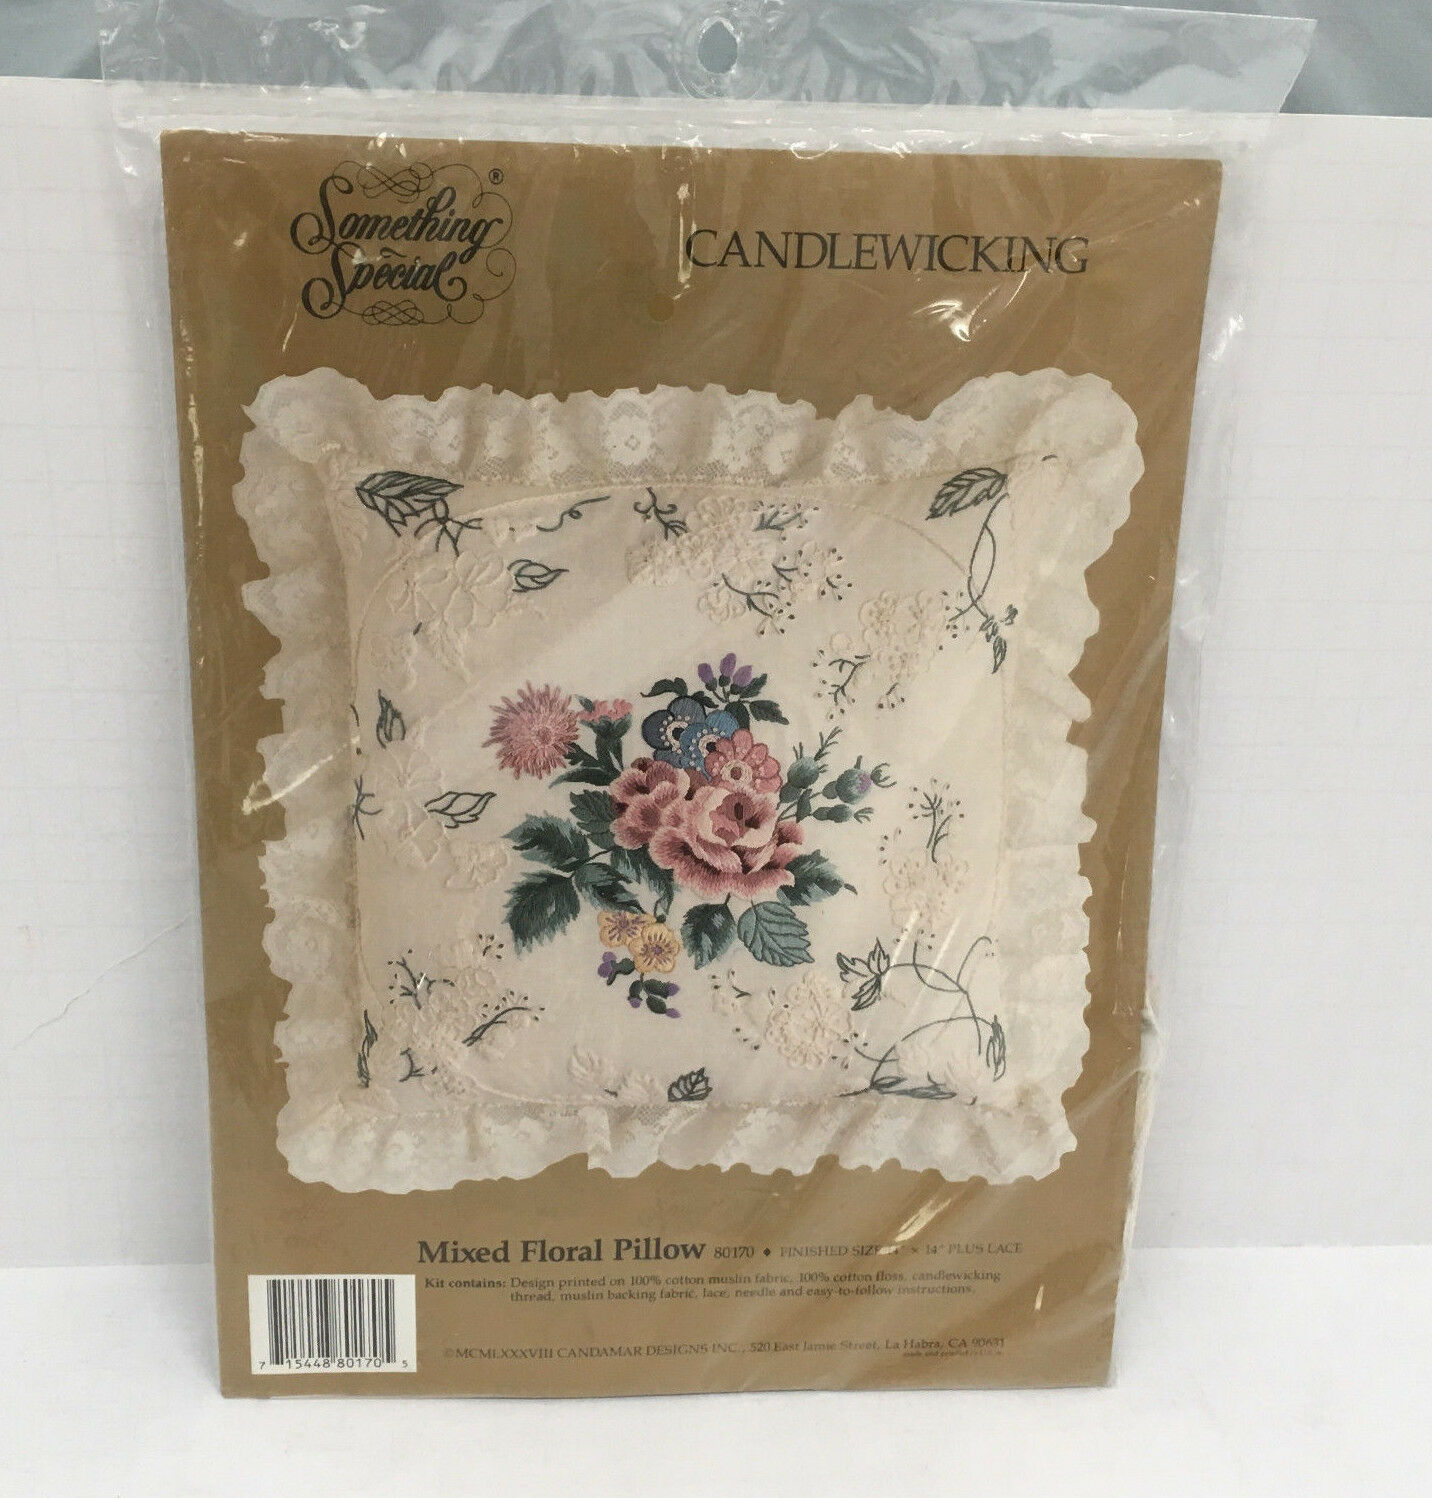 vintage candlewicking kit mixed floral pillow something special brand never used - $29.65